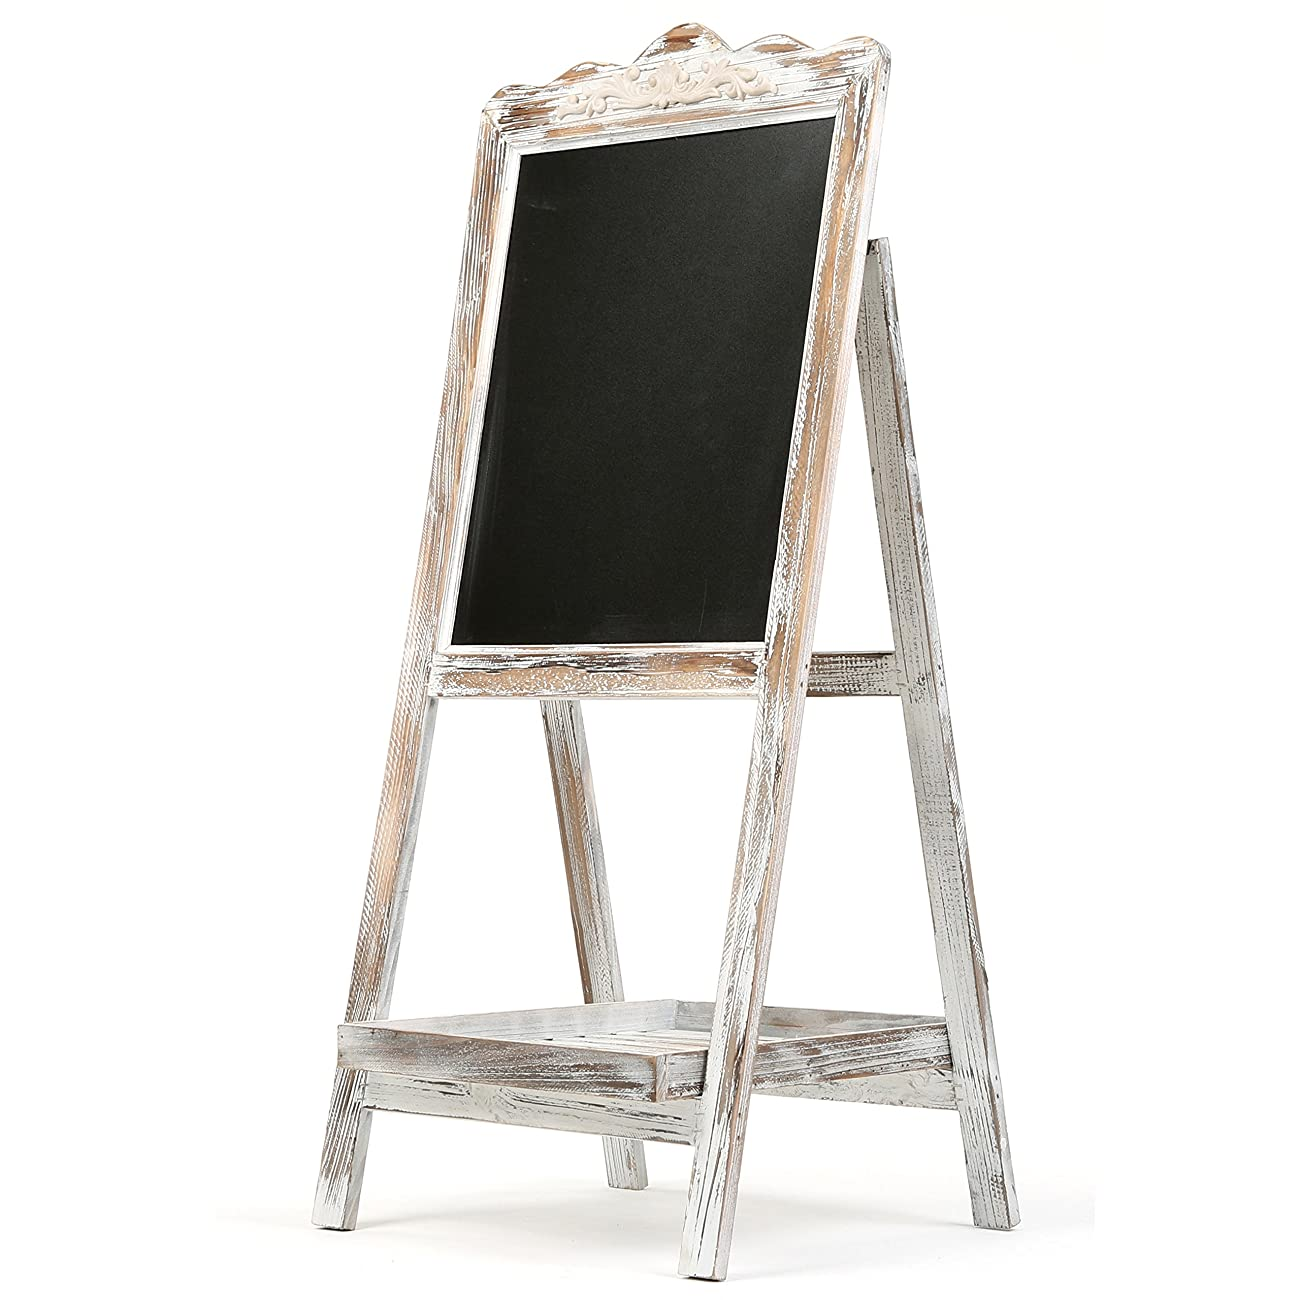 MyGift Vintage Style White Washed Brown Wood Chalk Board Easel / Freestanding Guest Message Sign Board 4